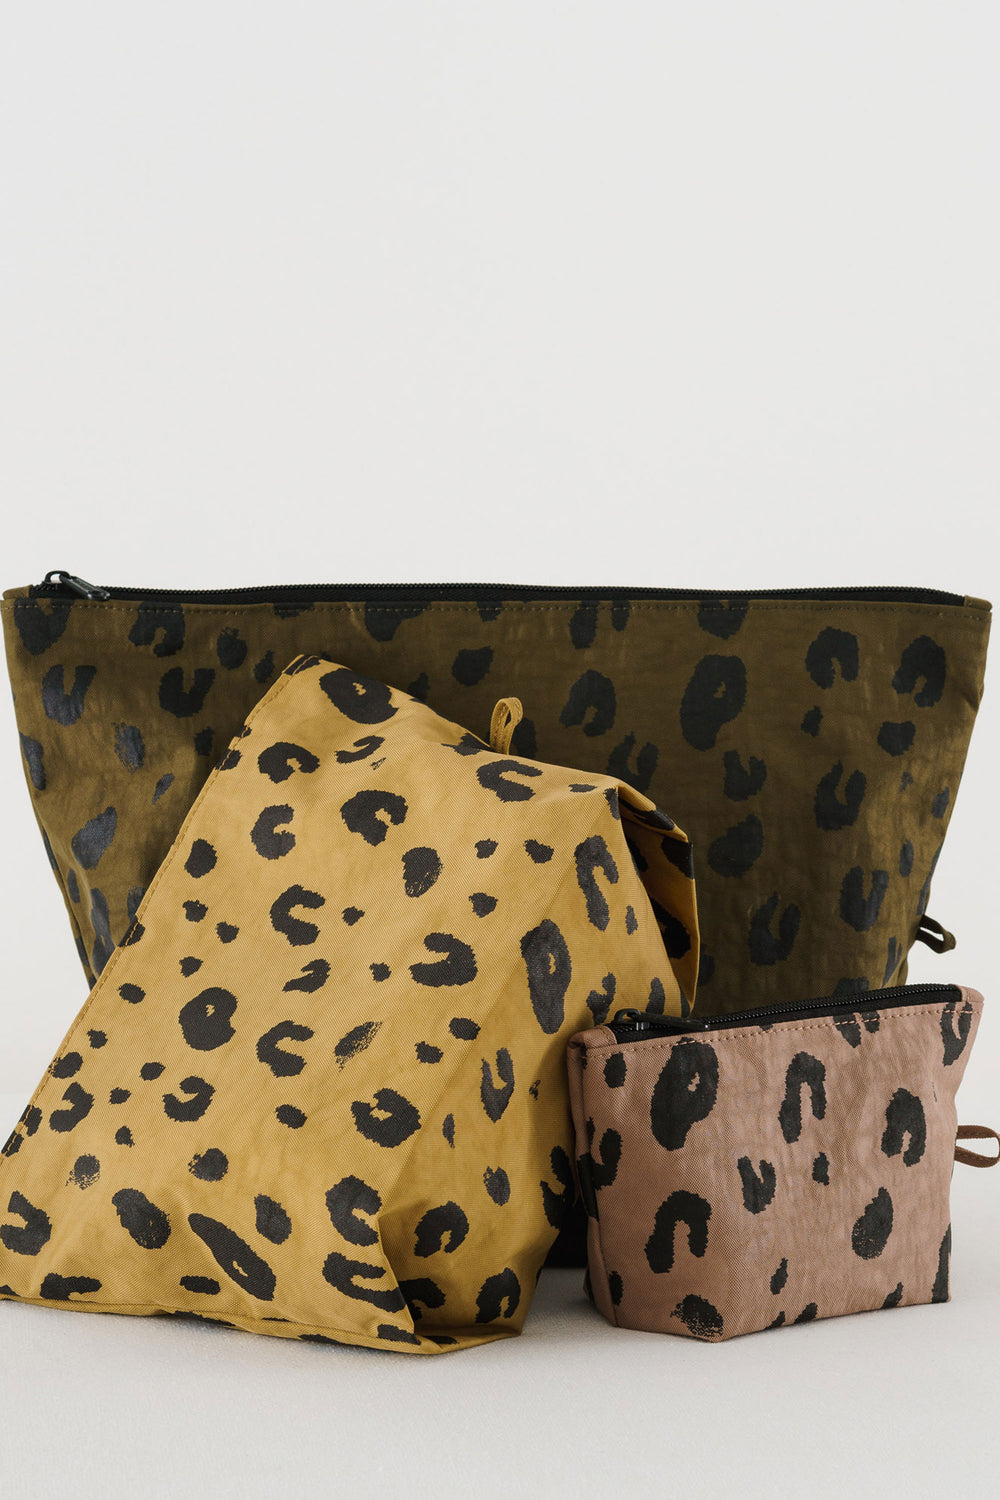 Baggu Go Pouch Set- Leopard - Whimsy & Row